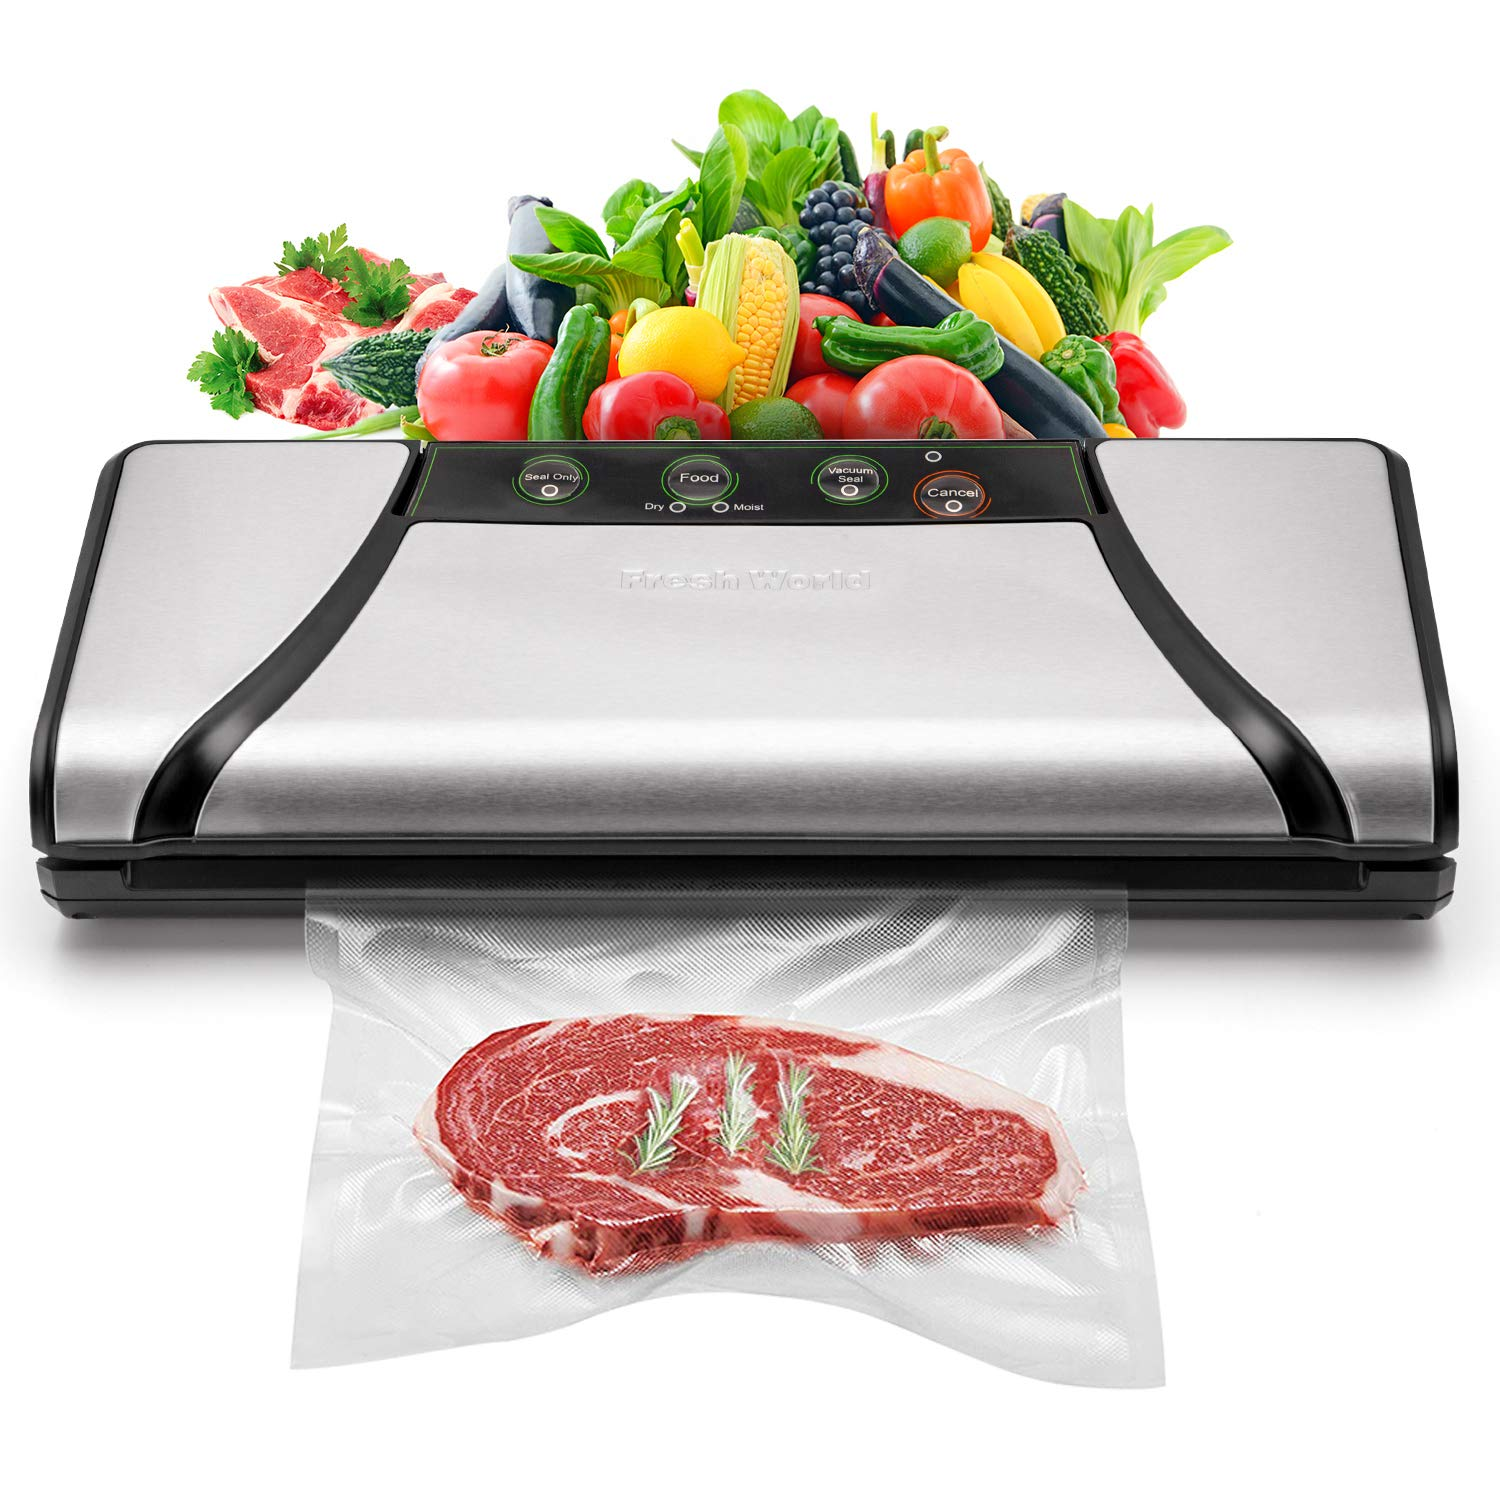 Vacuum Sealer, 4-in-1 Automatic Food Saver with Cutter, Stainless Stee Vacuum Packing Machine for Dry&Moist Food,(TVS-2019) by Fresh World